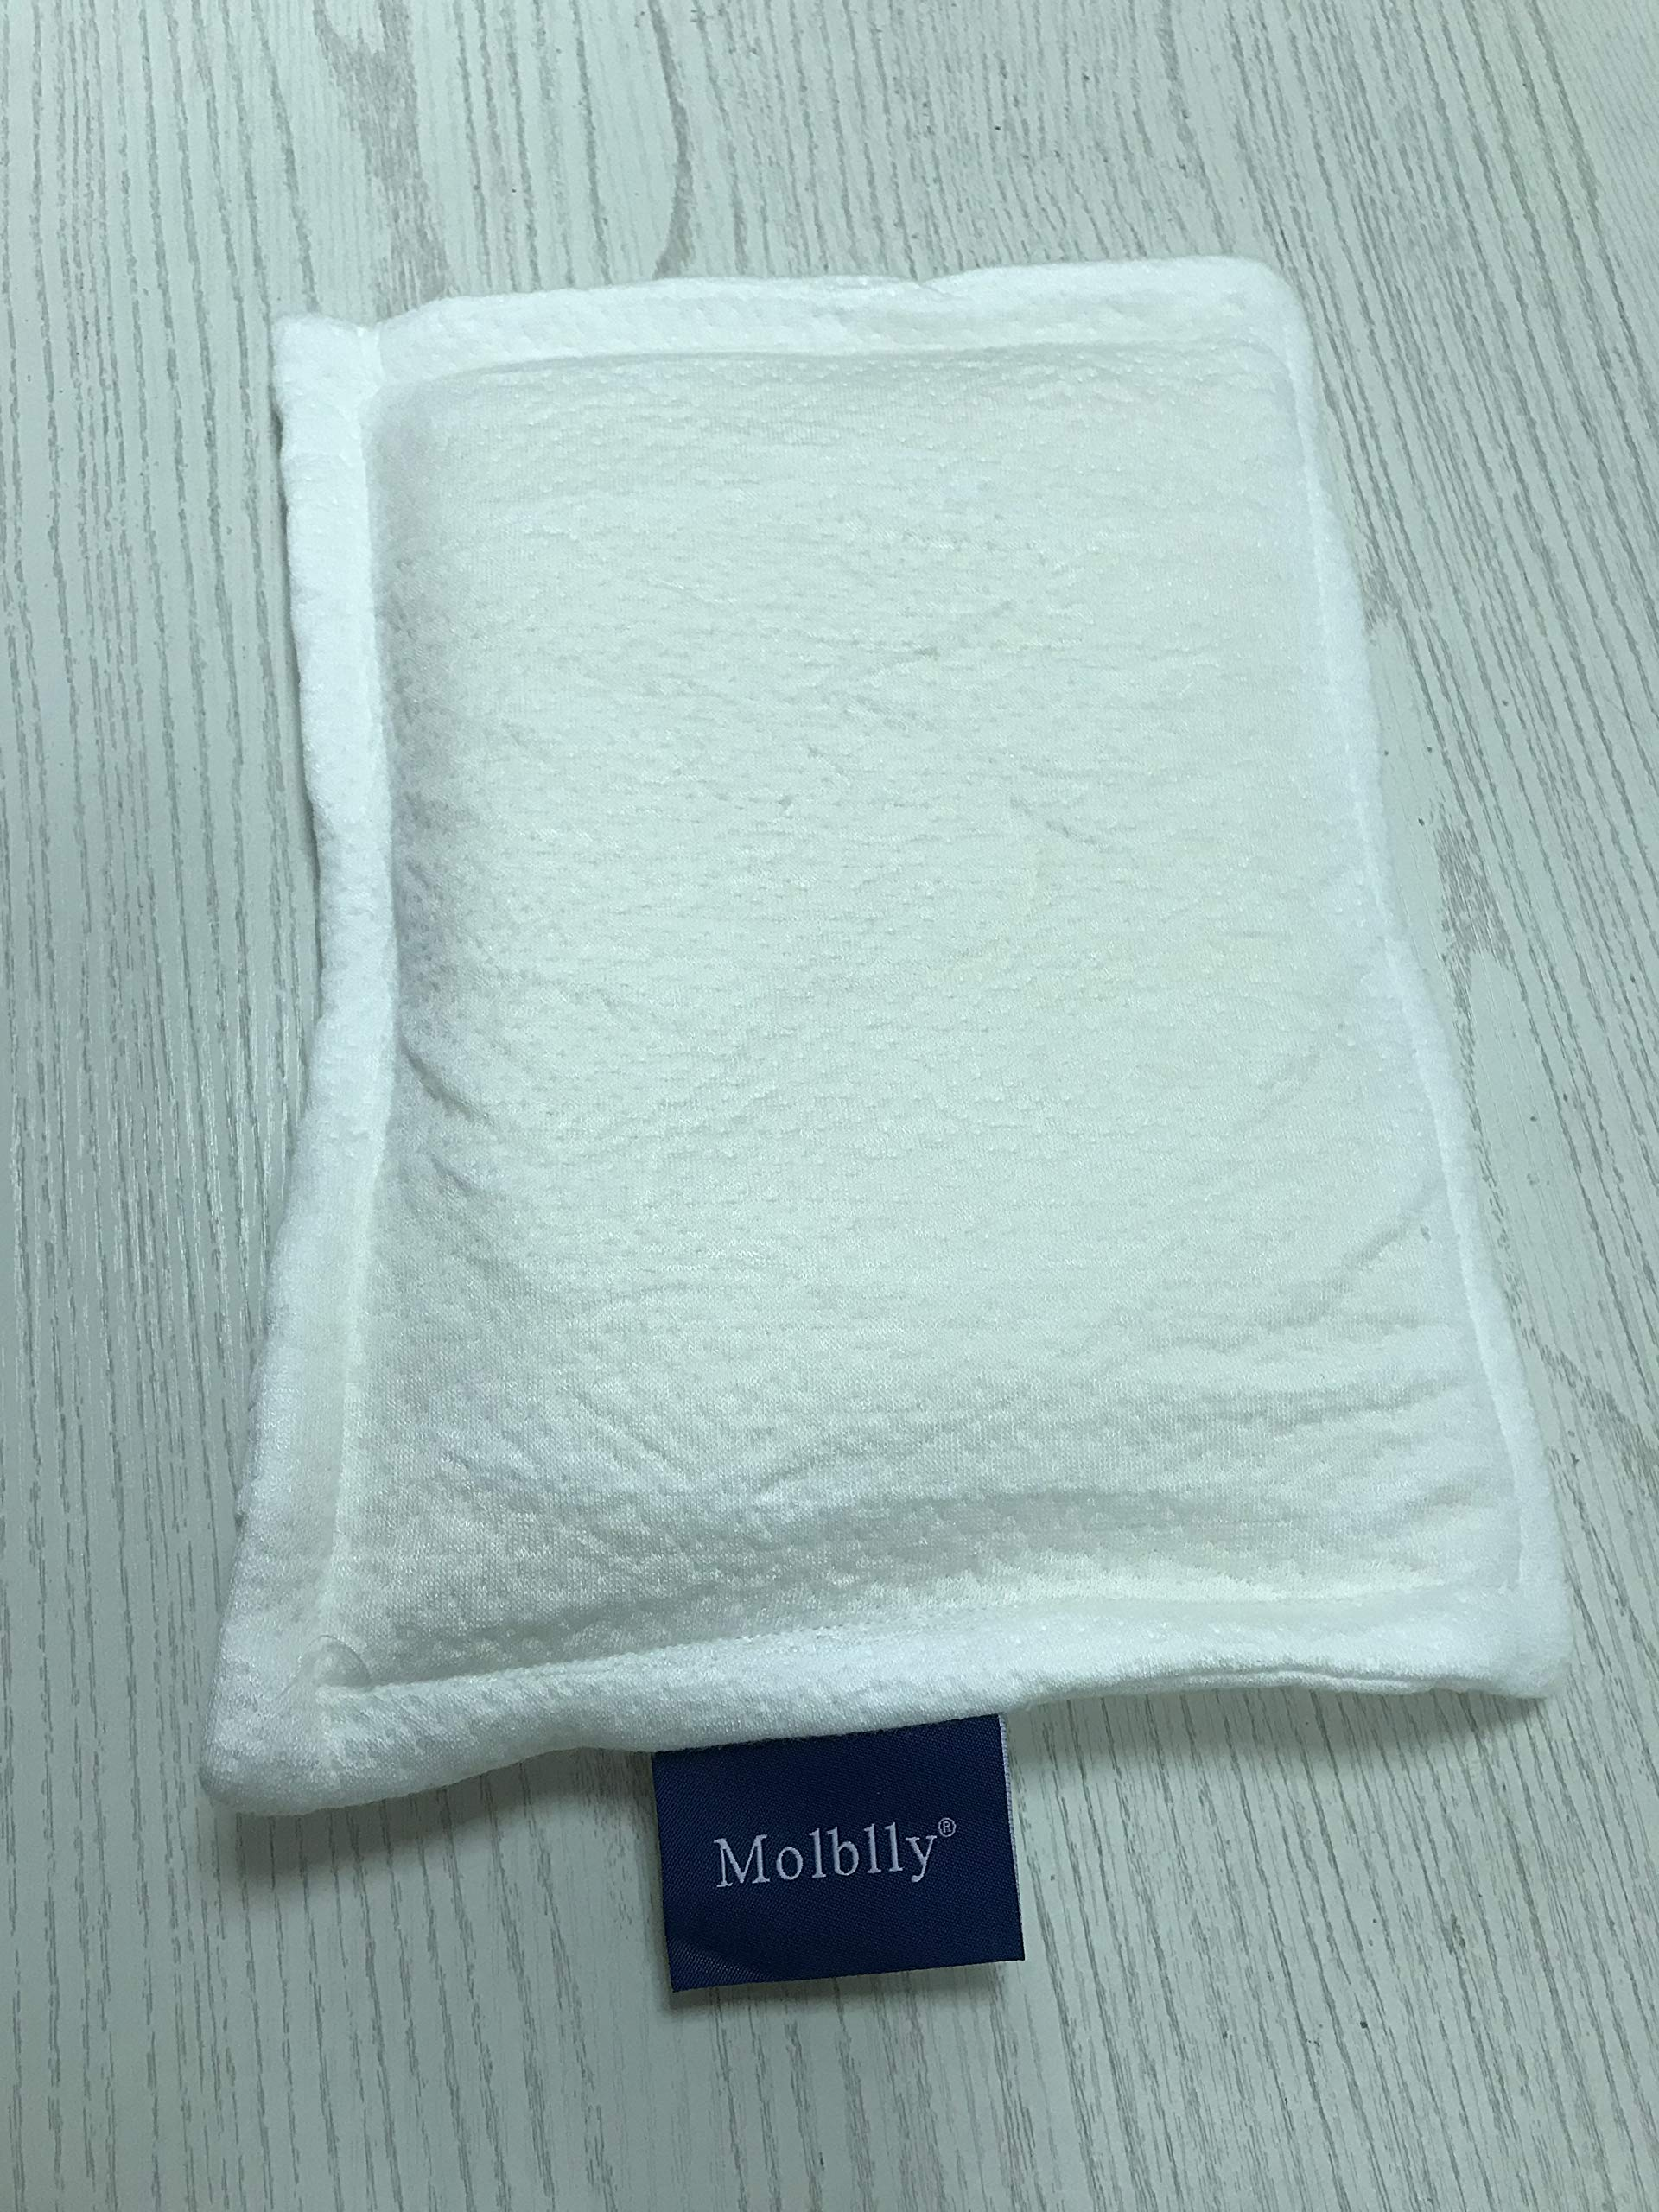 Molblly Baby Head Shaping Pillow